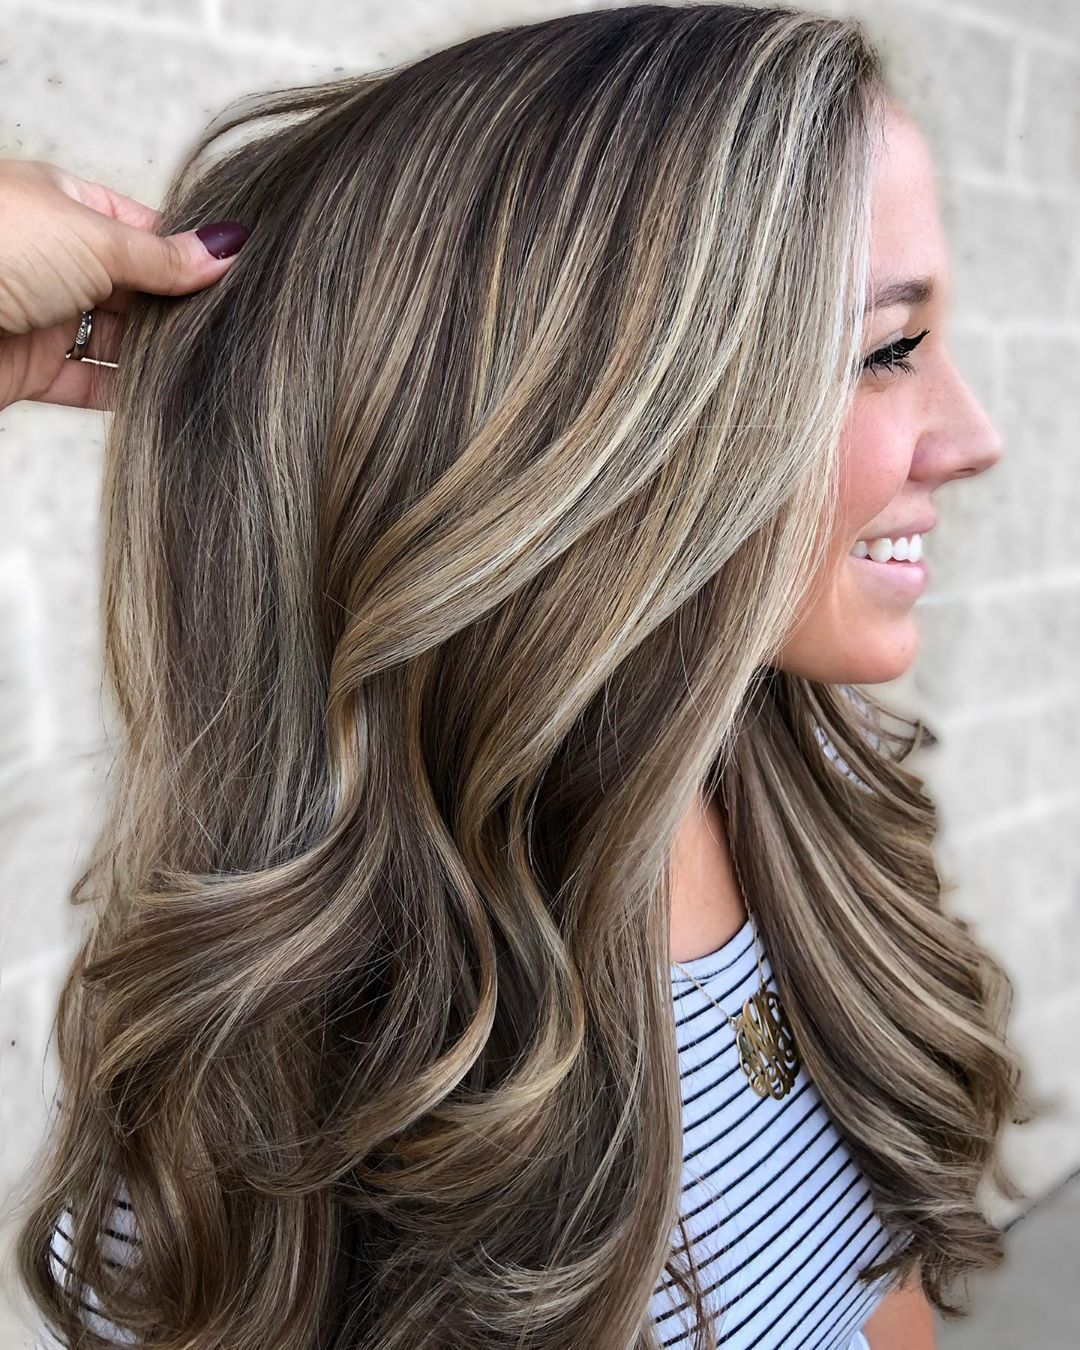 30 Stunning Ash Blonde Hair Ideas To Try In 2021 Hair Adviser Ash Blonde Hair Colour Blonde Hair With Highlights Ash Blonde Hair With Highlights